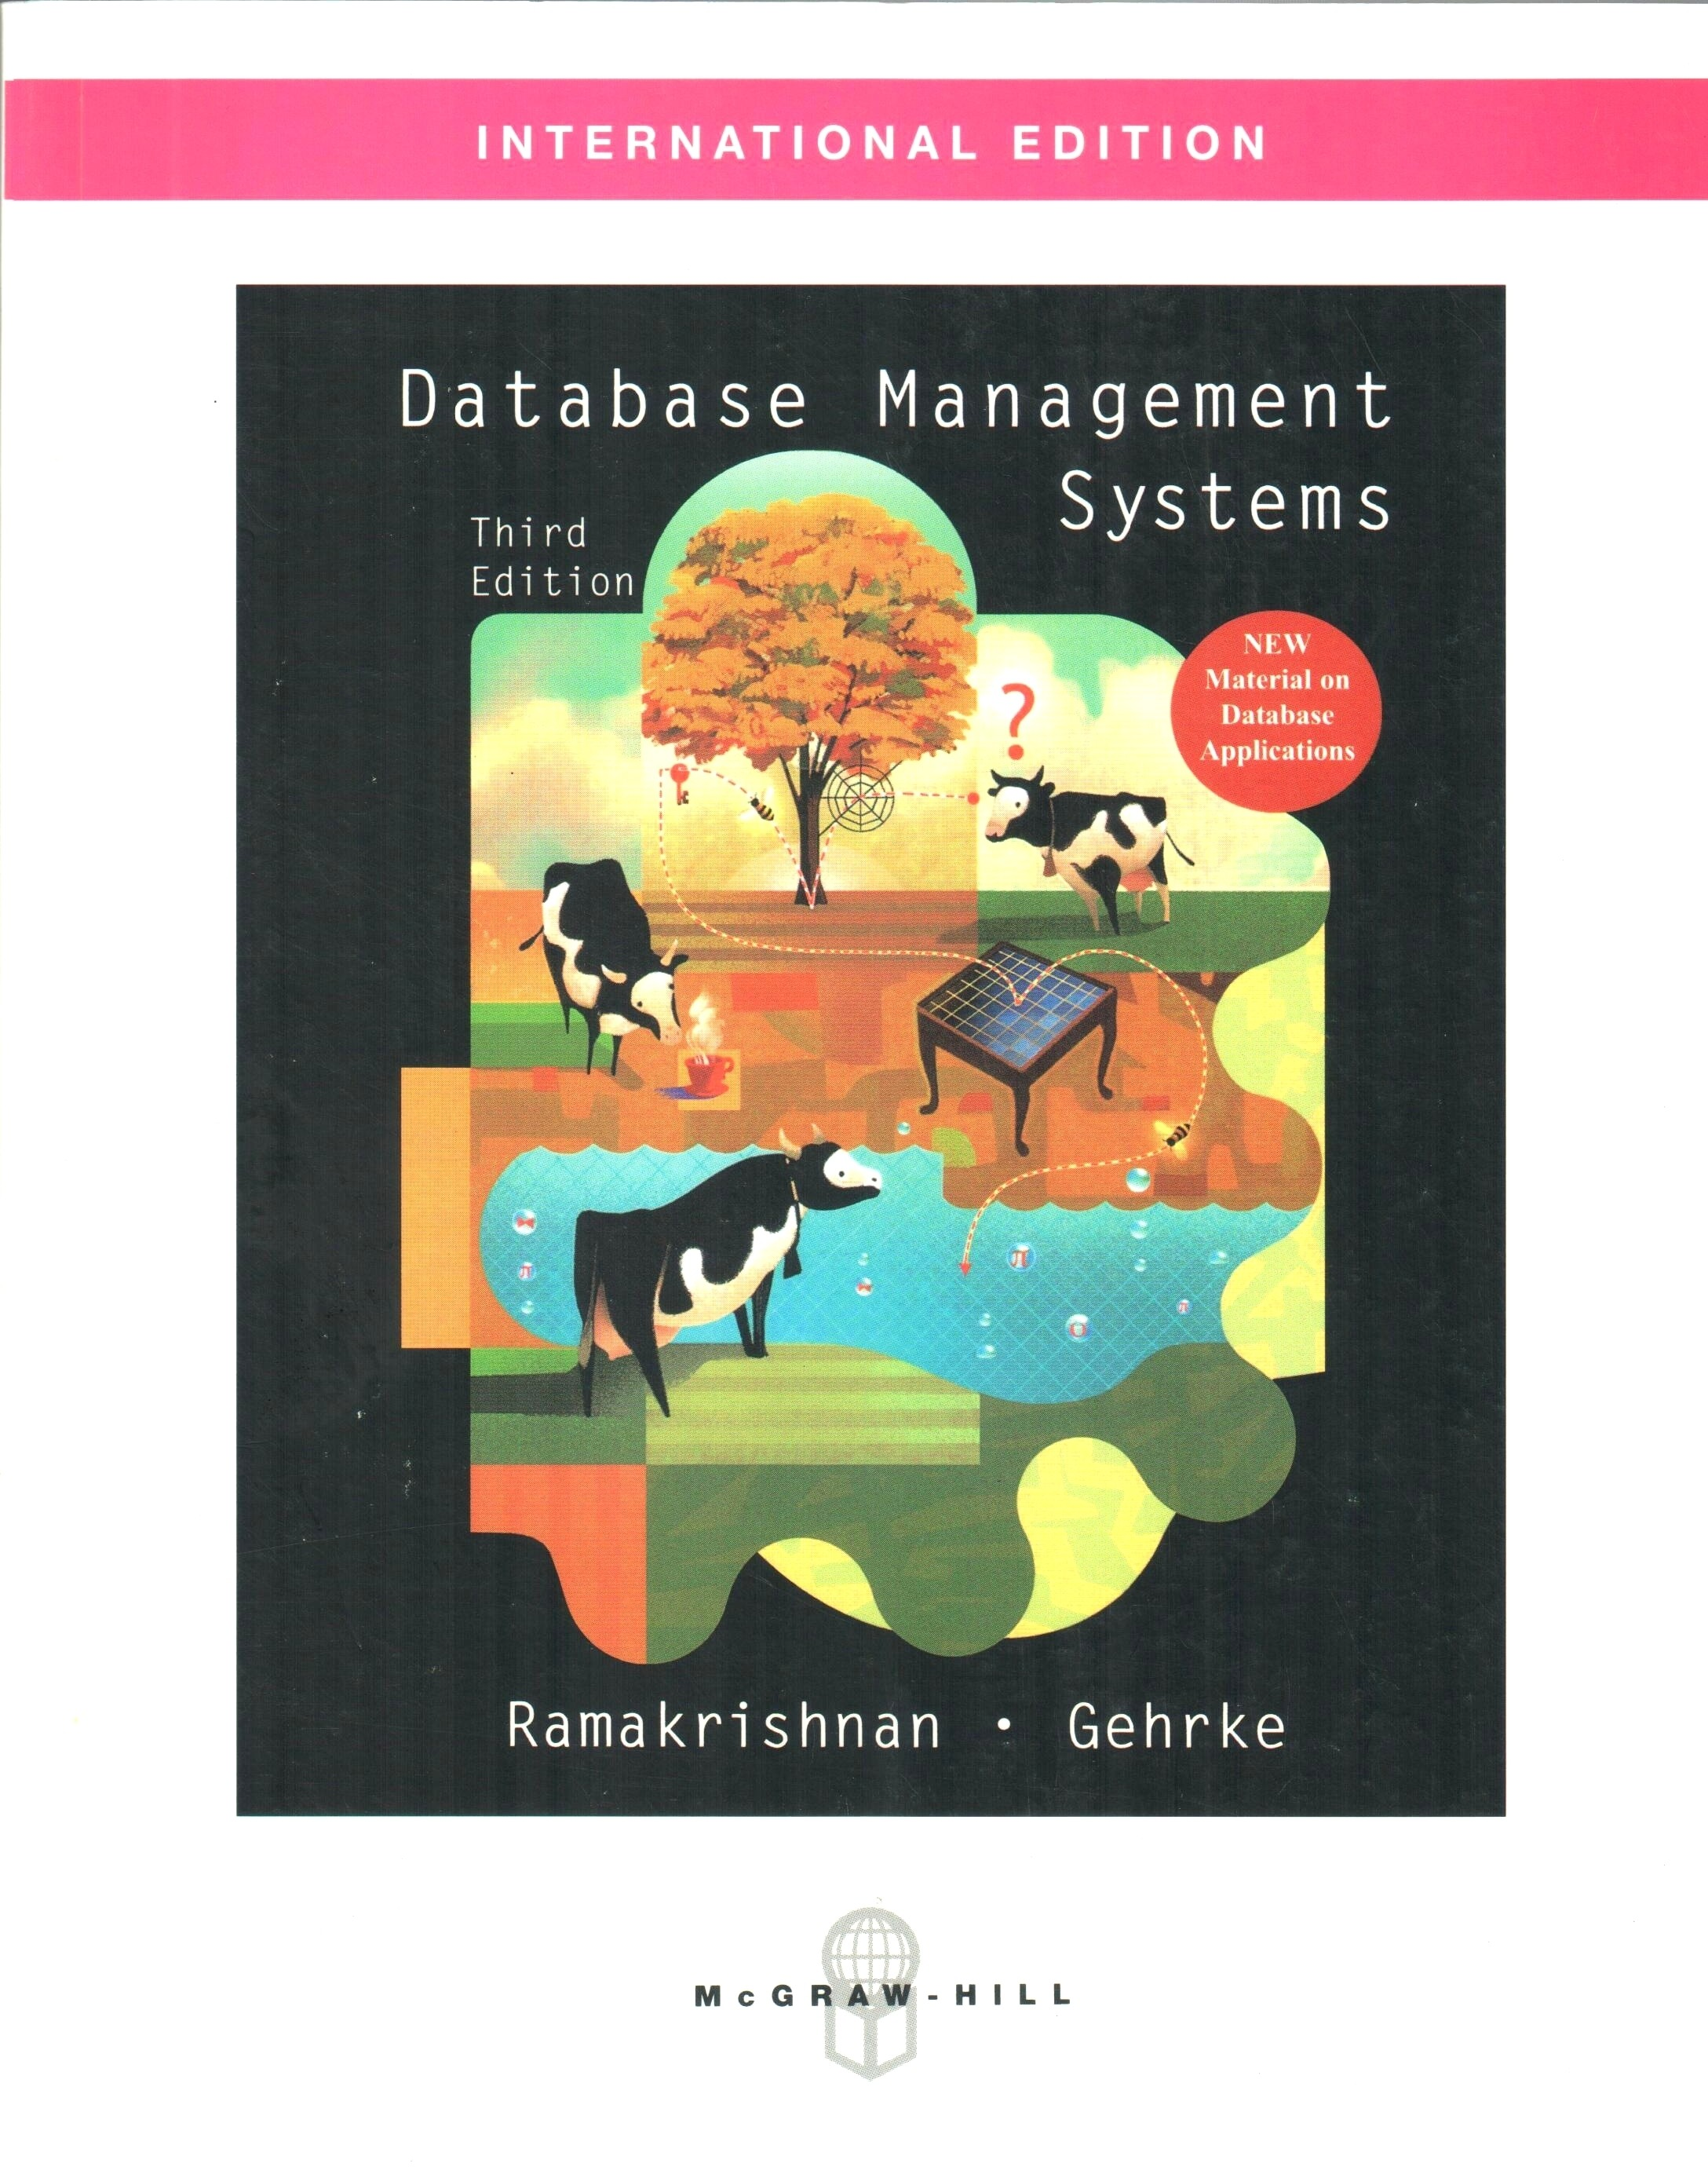 Recommended Books for SQL Server DBAs and Developers